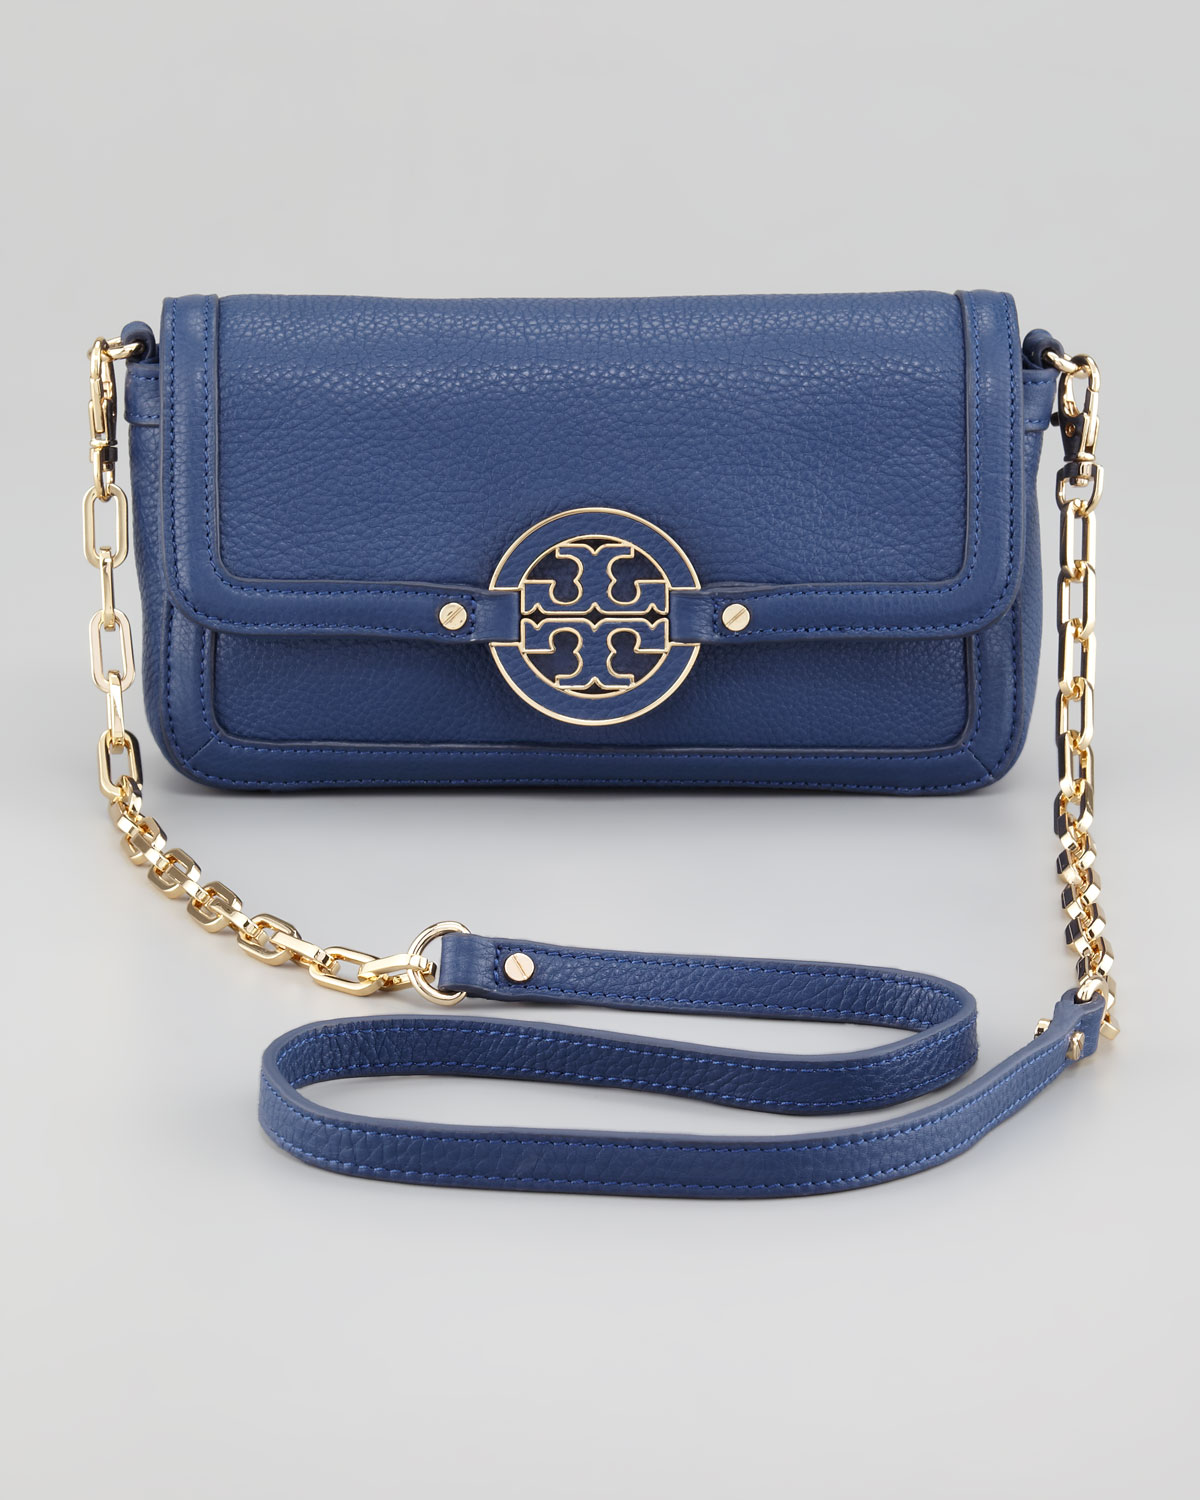 Lyst - Tory Burch Amanda Mini Crossbody Bag Indigo in Blue 609c26a47